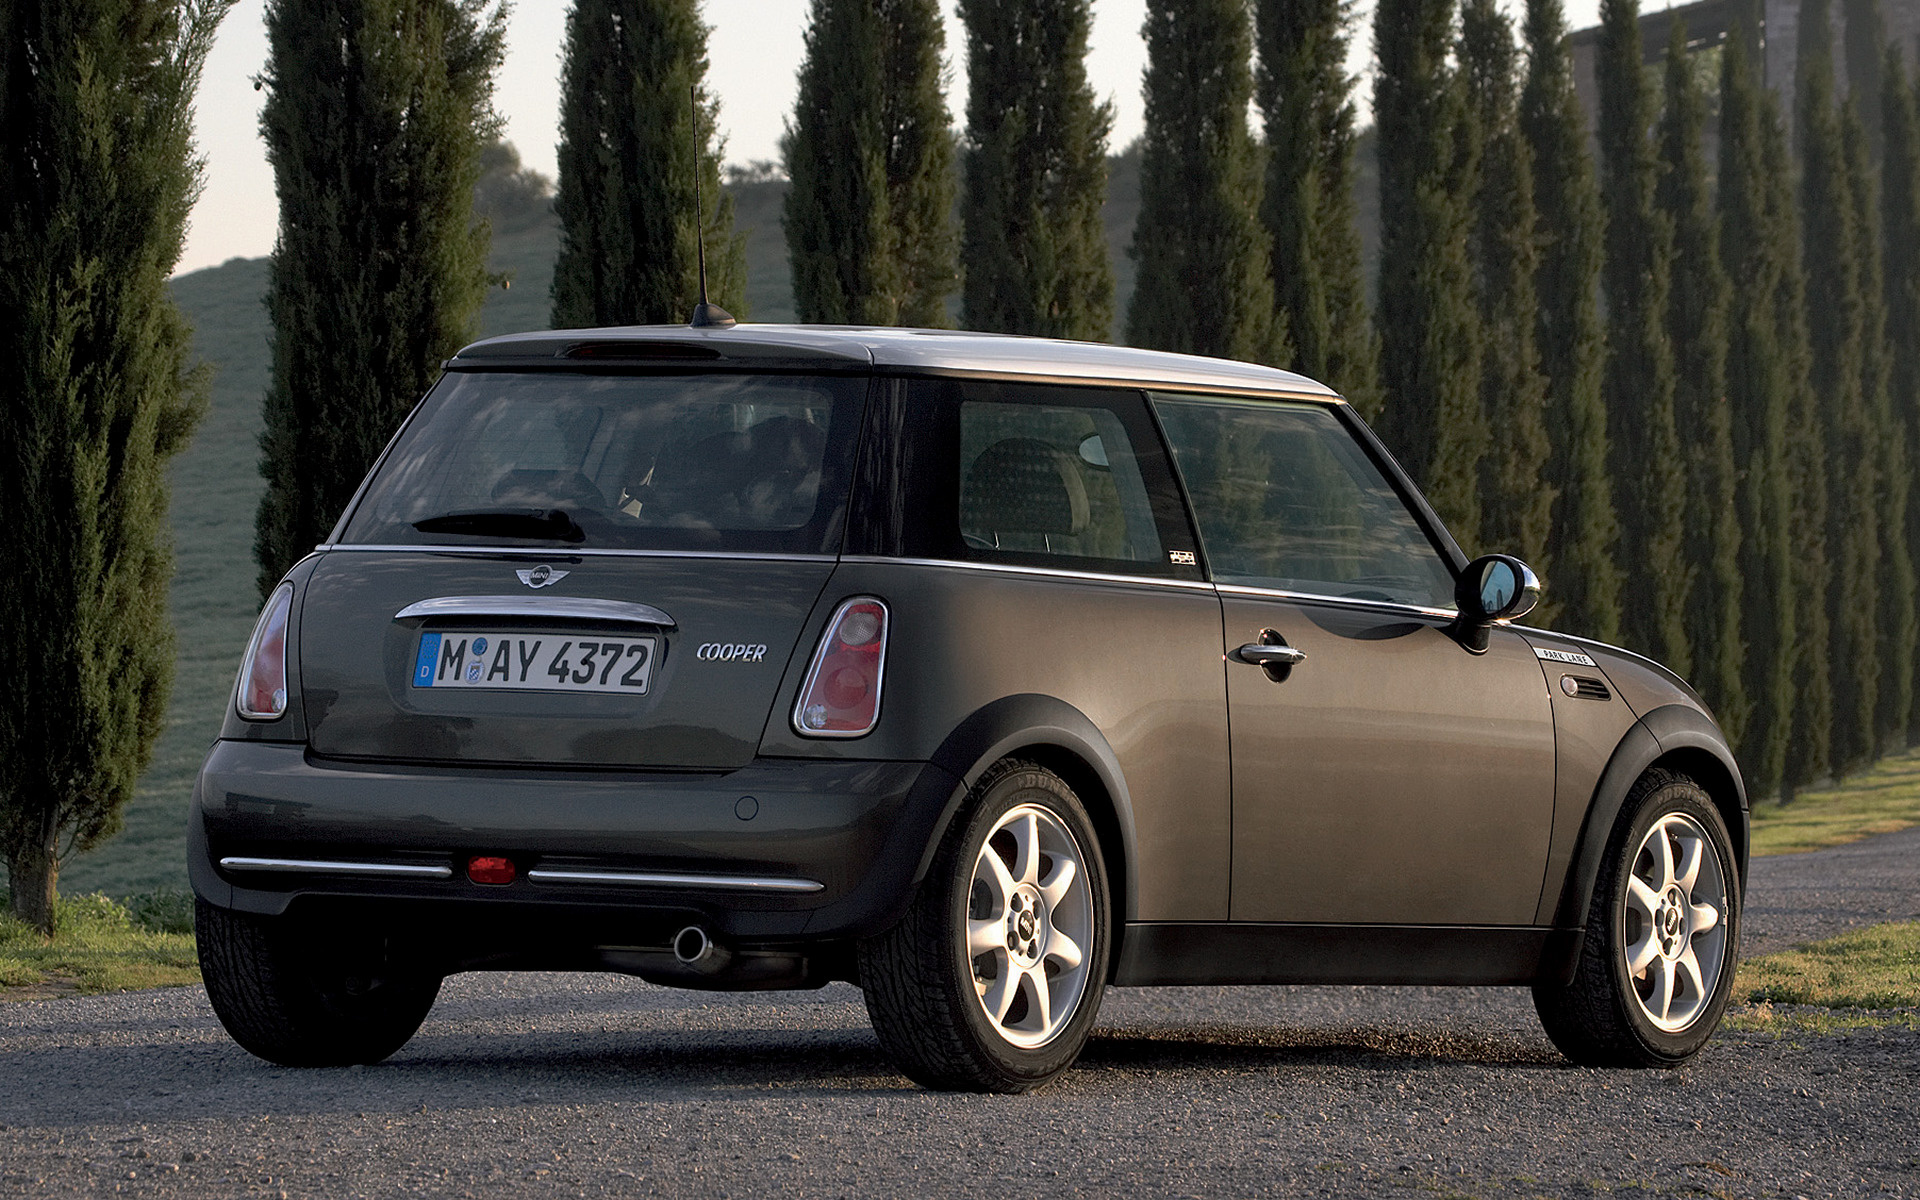 BMW Mini Cooper >> 2005 Mini Cooper Park Lane - Wallpapers and HD Images ...